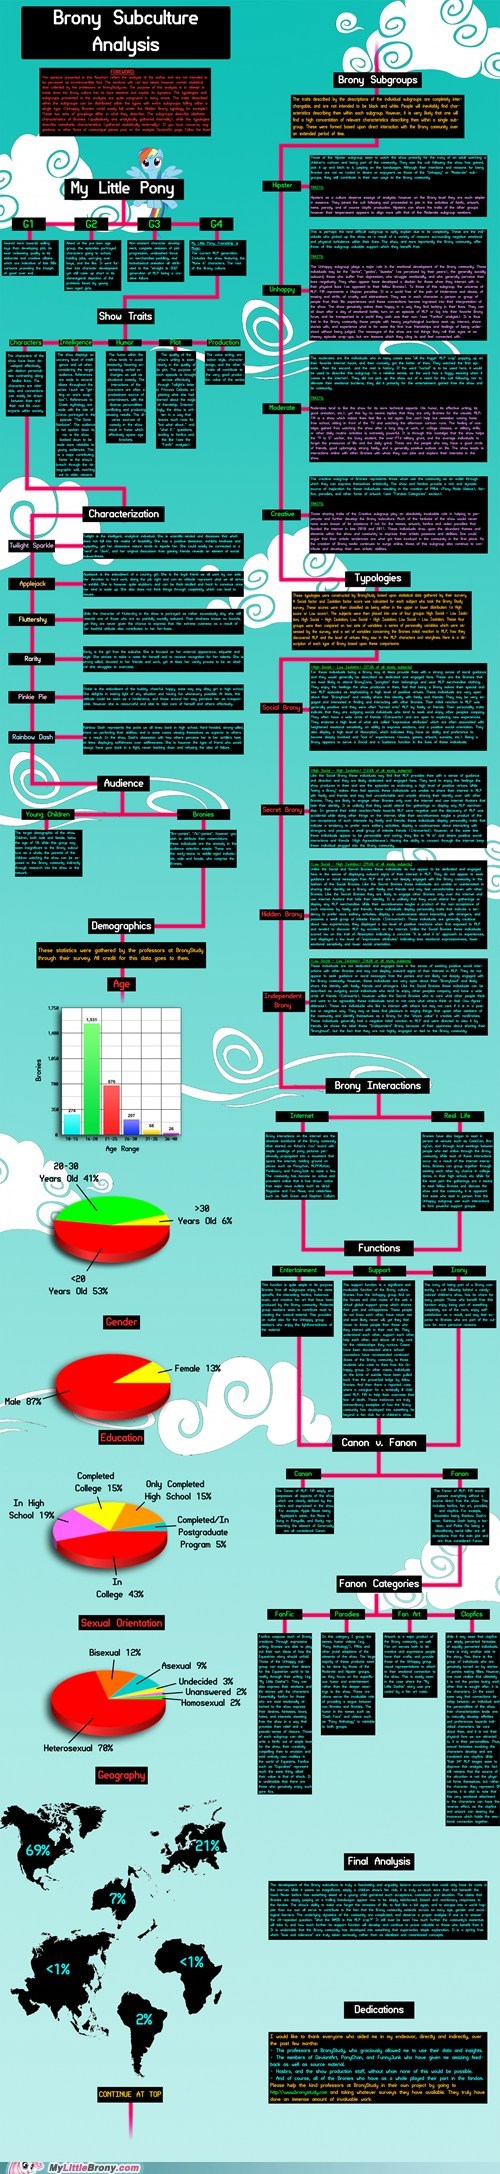 analysis,awesome,Bronies,graphjam,graphscharts,infographic,subculture